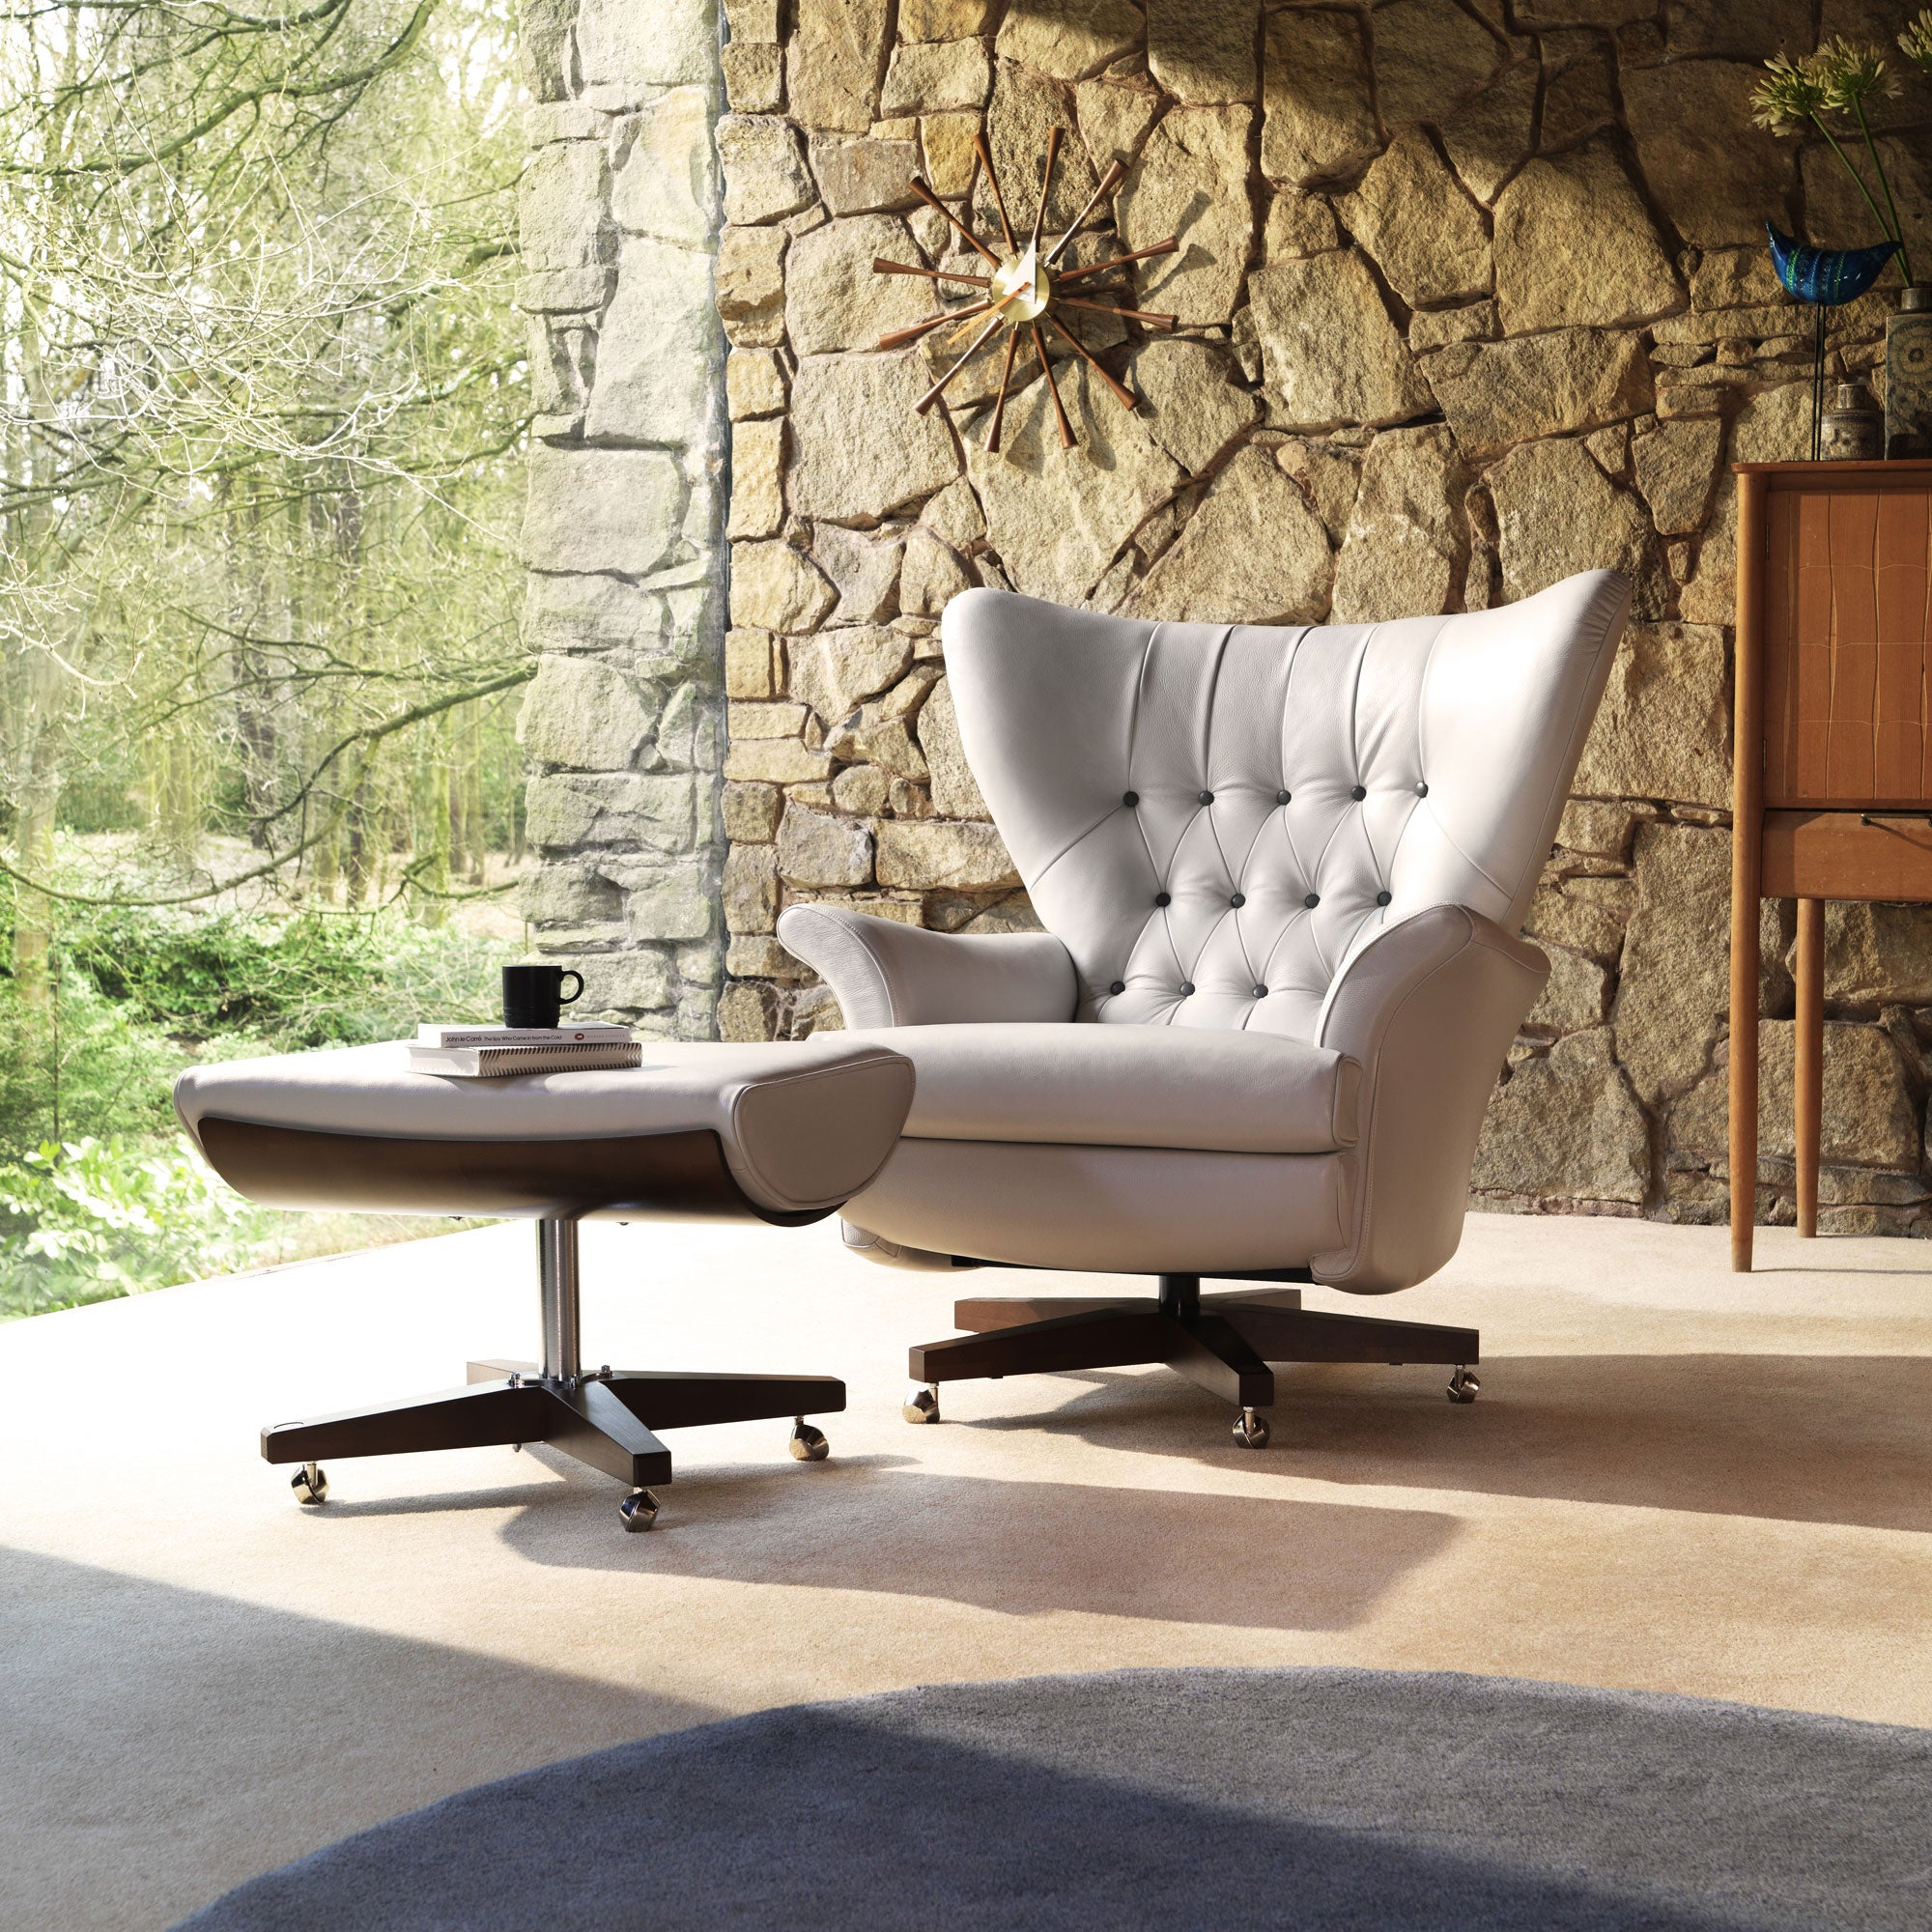 Vintage Vibe The World's Most Comfortable Chair – Ponsford